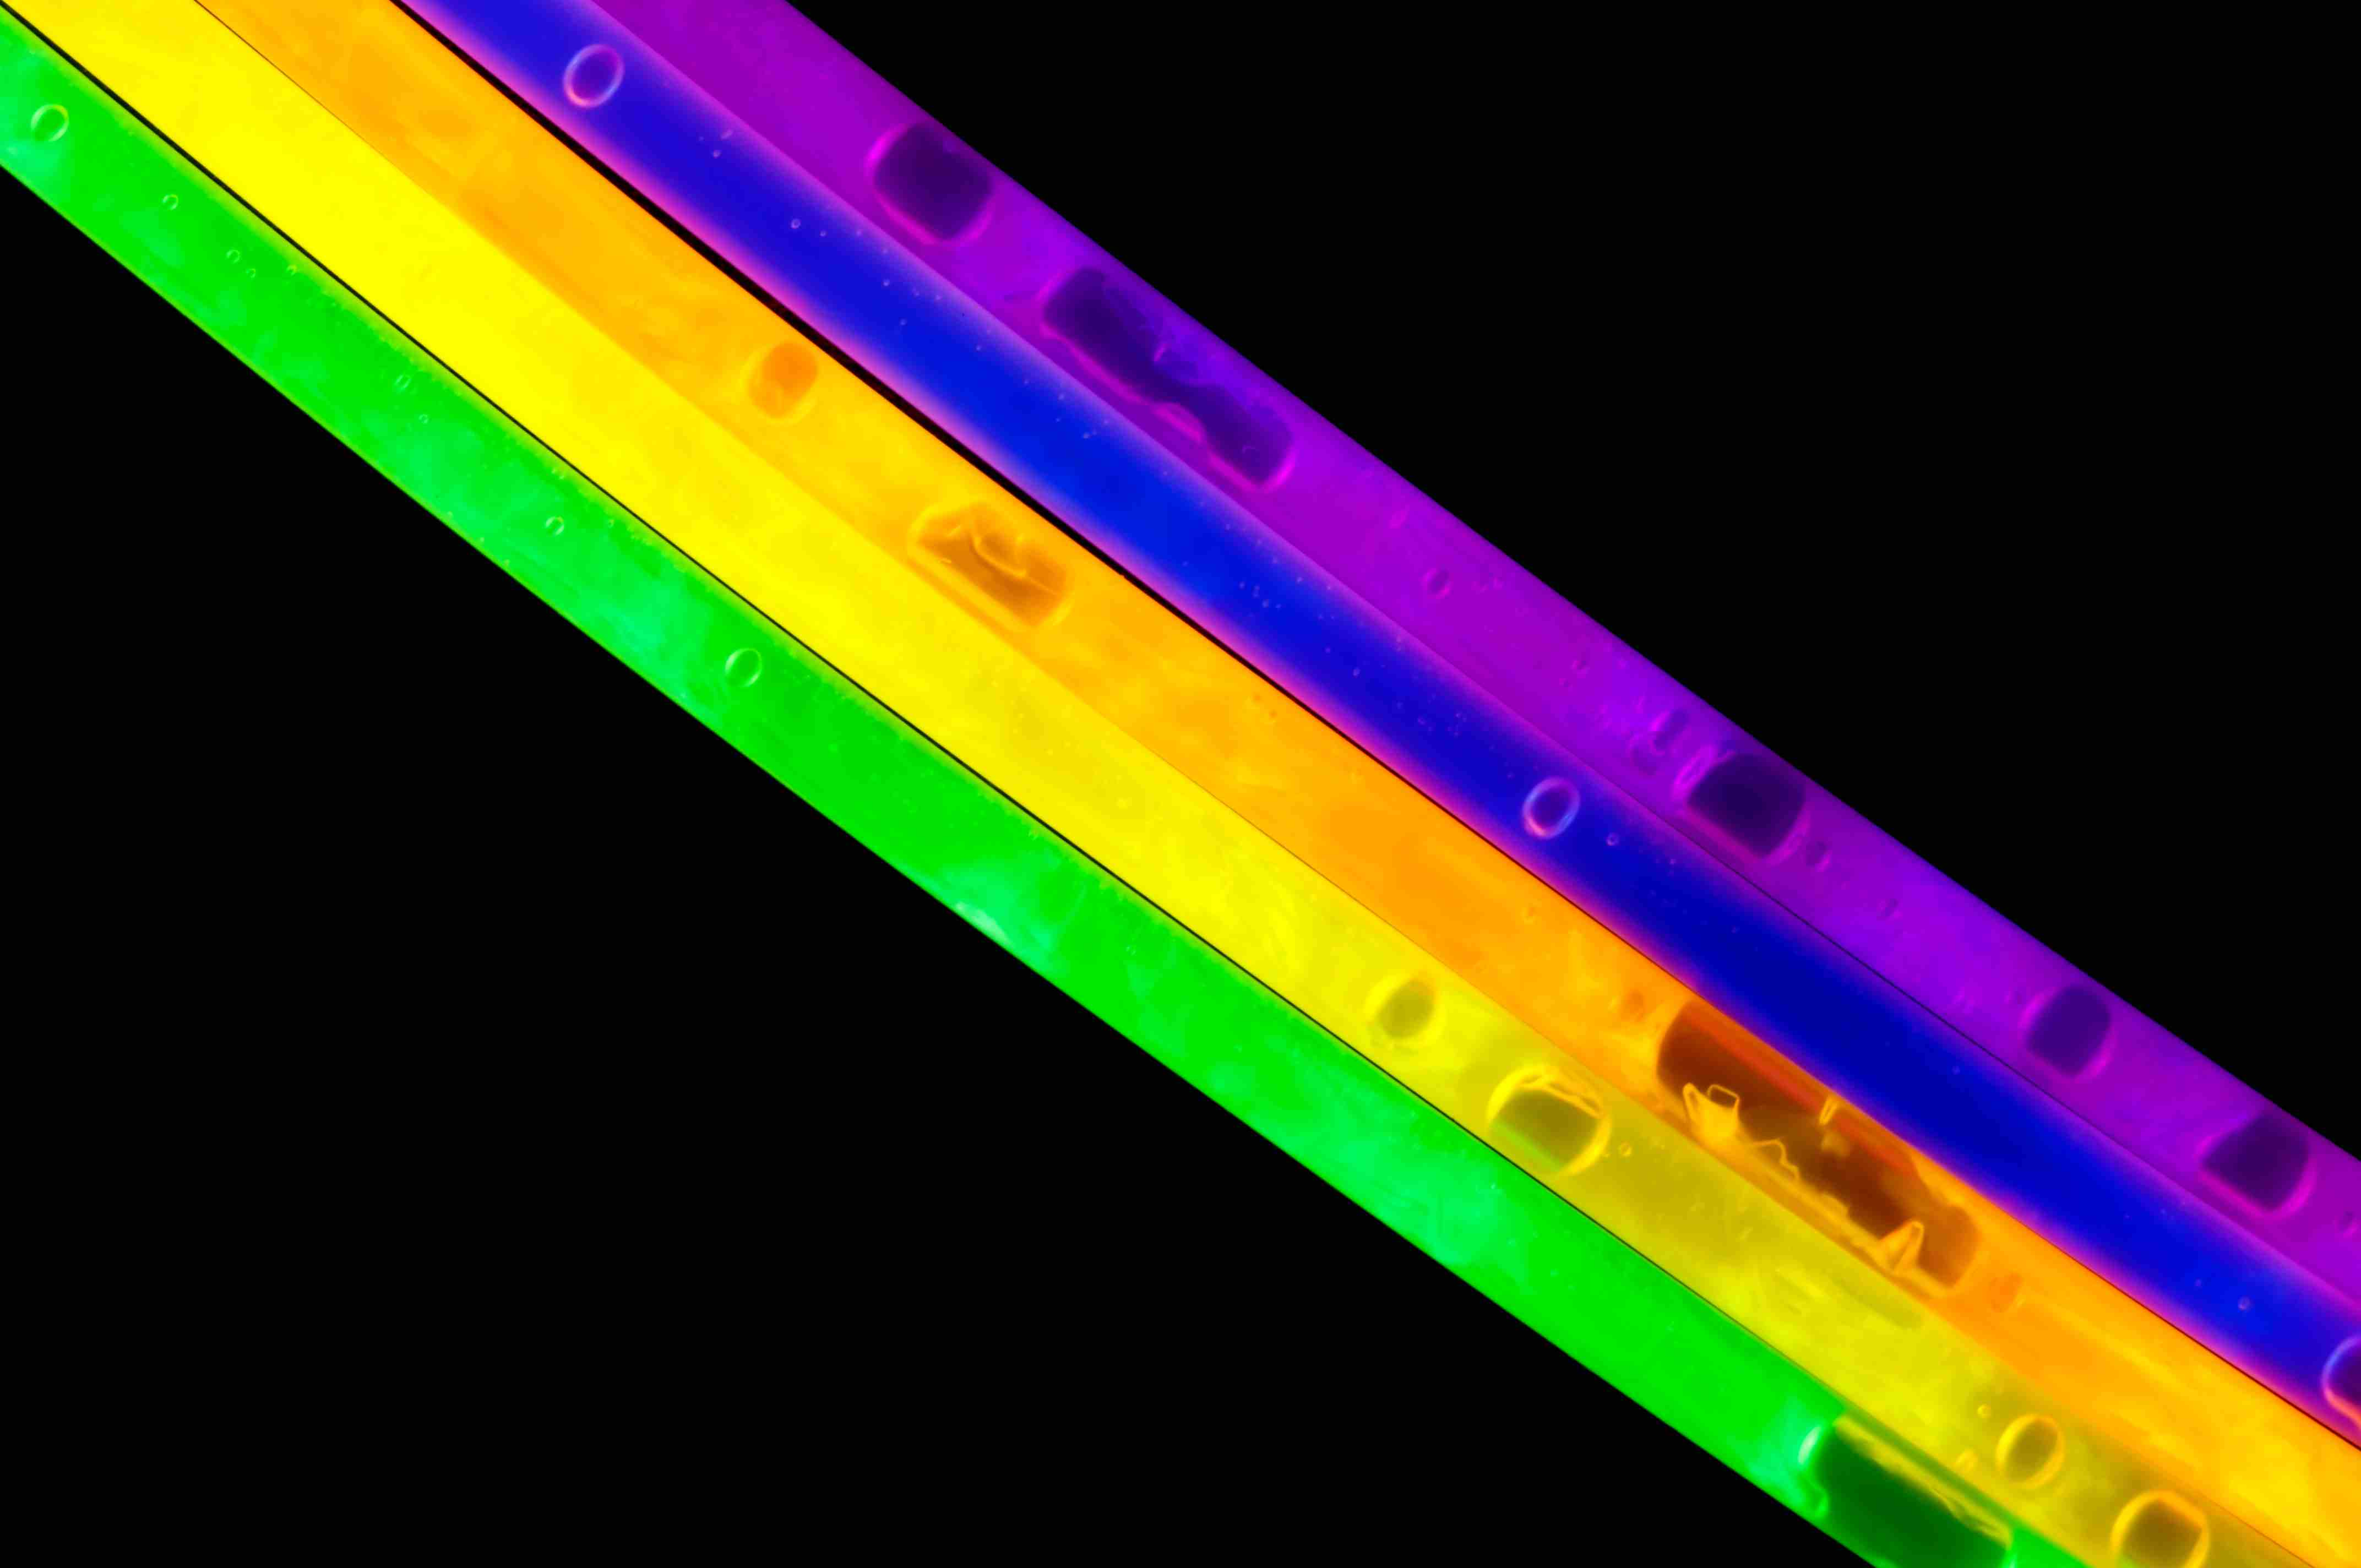 Glowsticks are an excellent example of chemiluminescence.